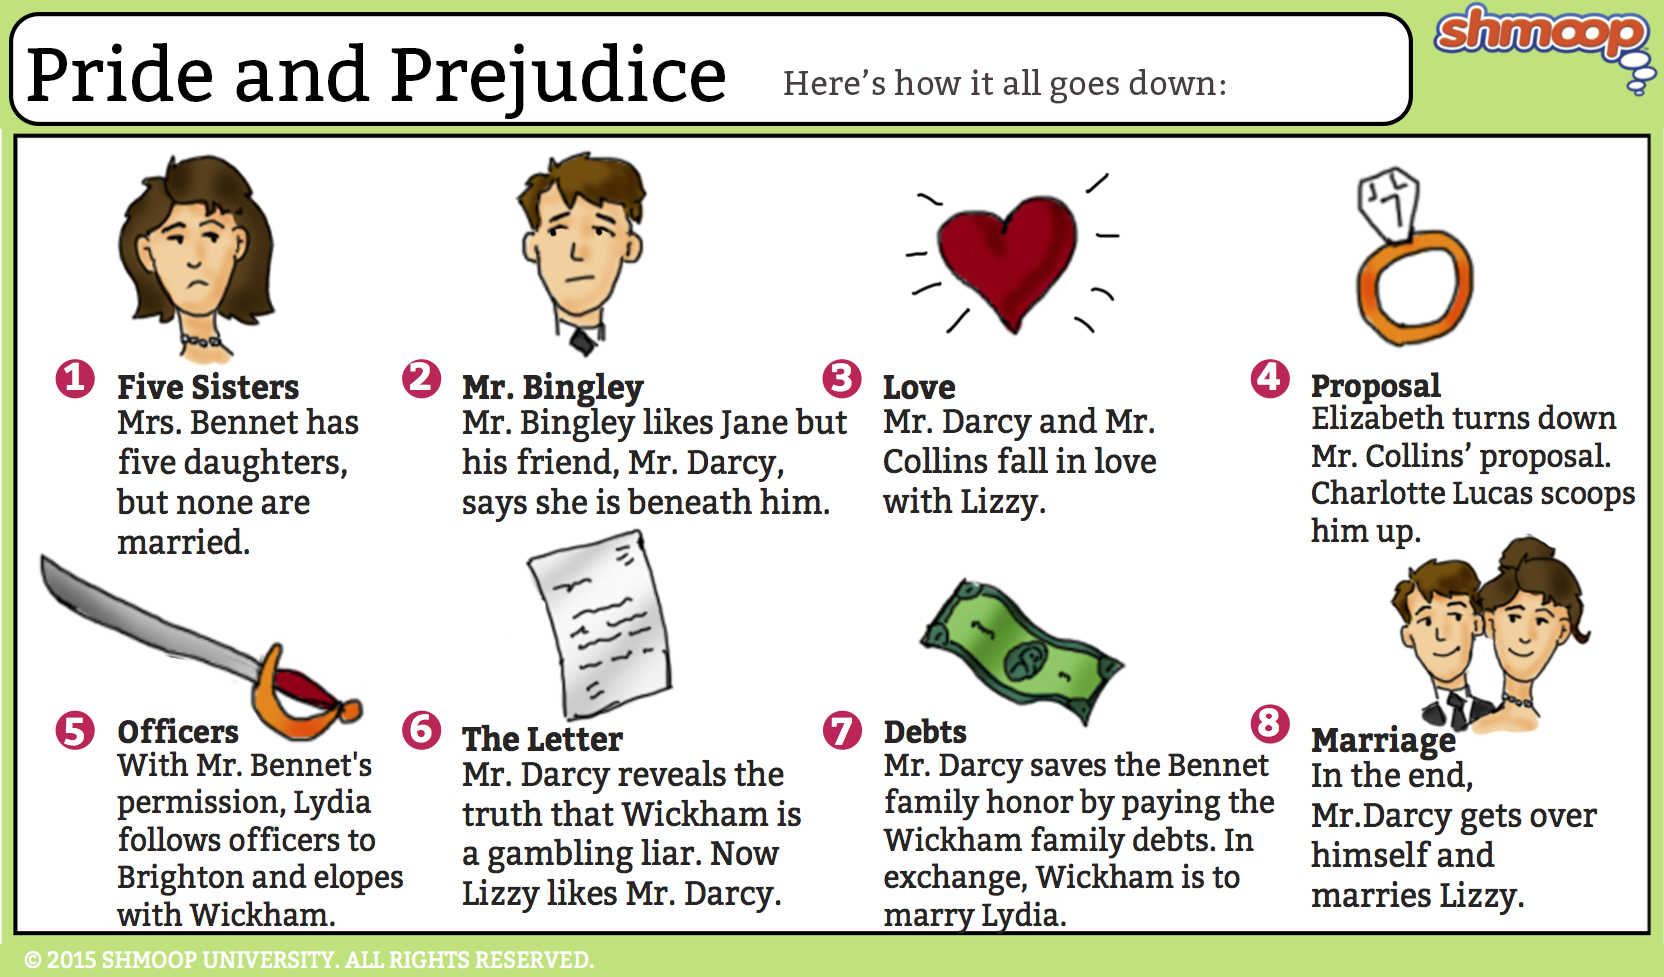 pride and prejudice review essay Jane austen's pride and prejudice - an analysis - silvia eibel - seminar paper   publish your bachelor's or master's thesis, dissertation, term paper or essay.